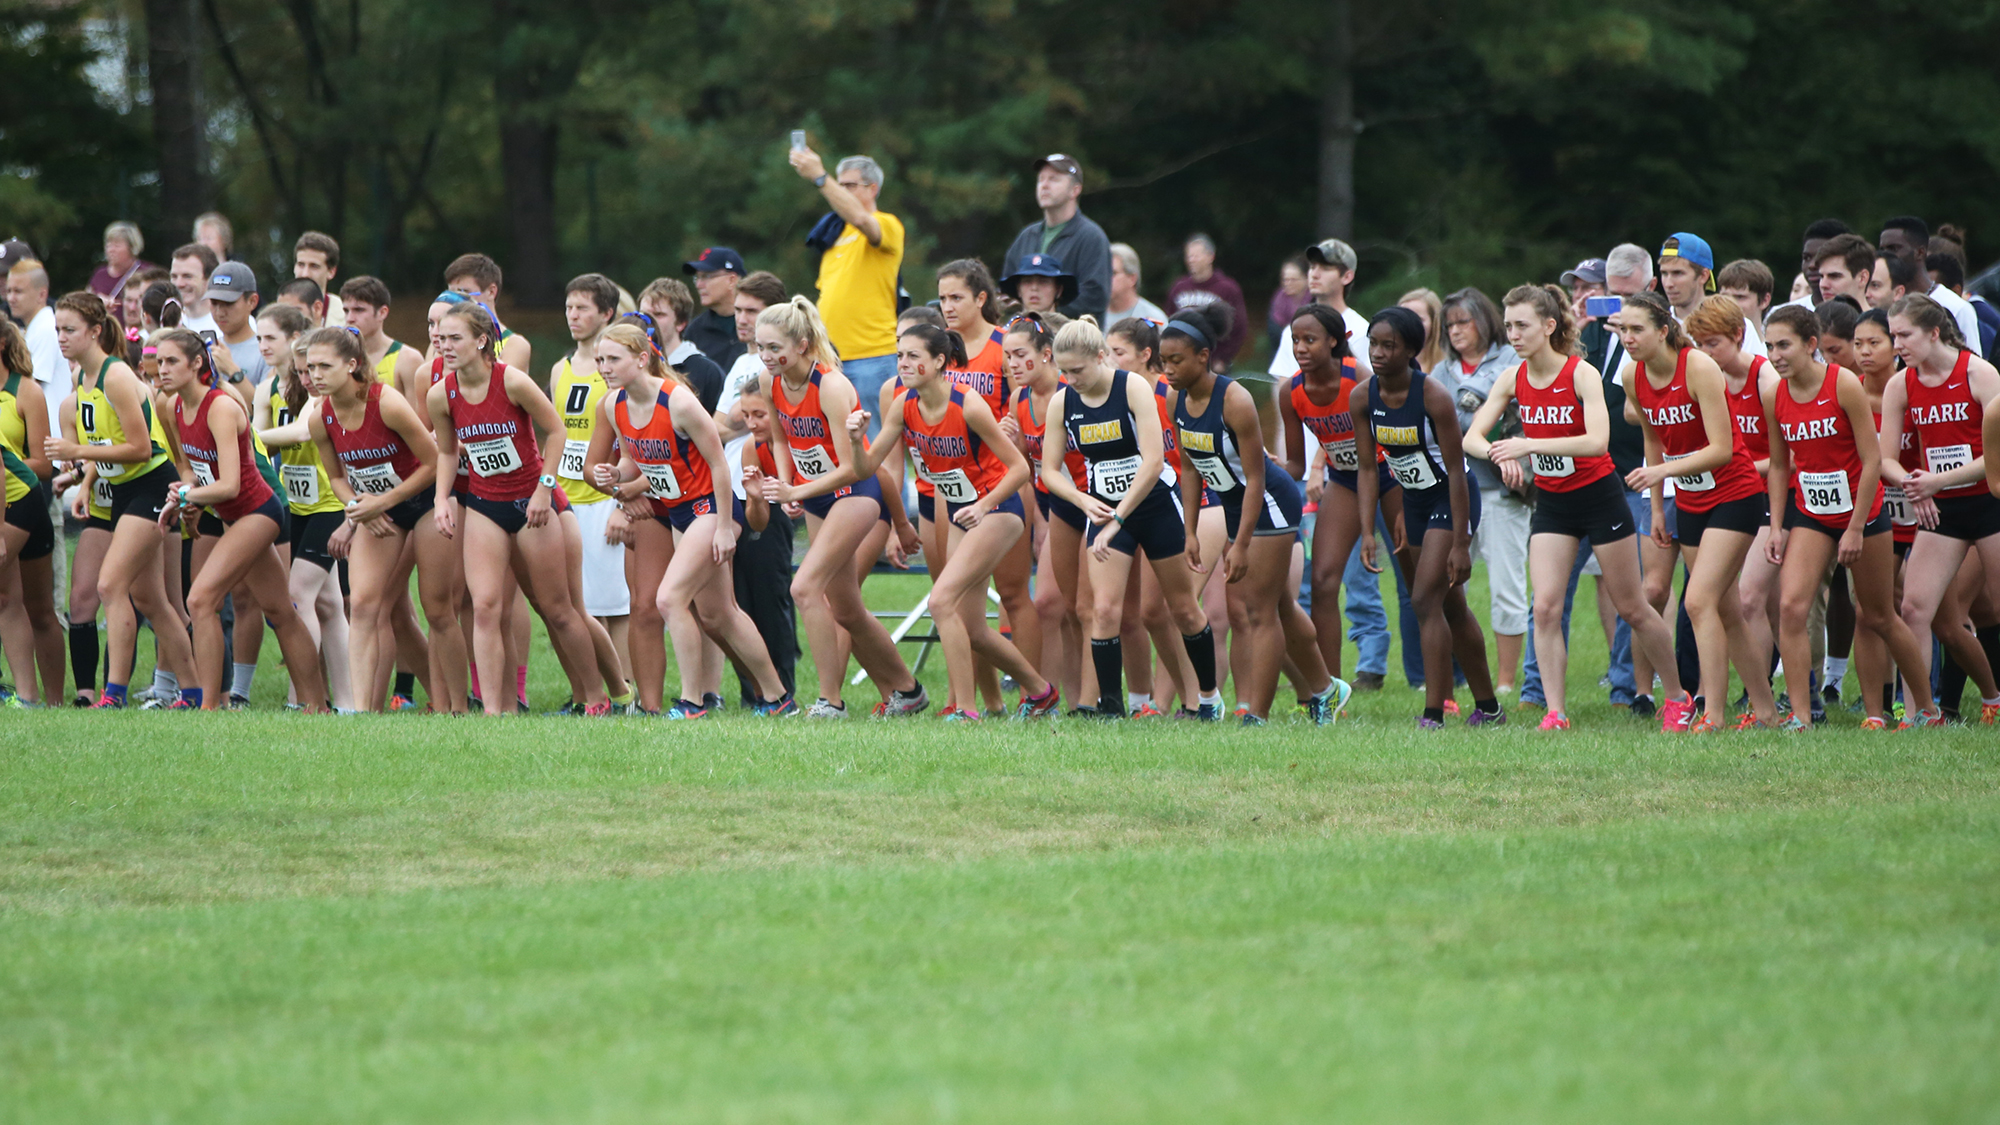 The Women's Cross Country team raced in the Annual Gettysburg Invitational (Photo courtesy of Gettysburg College Athletics).